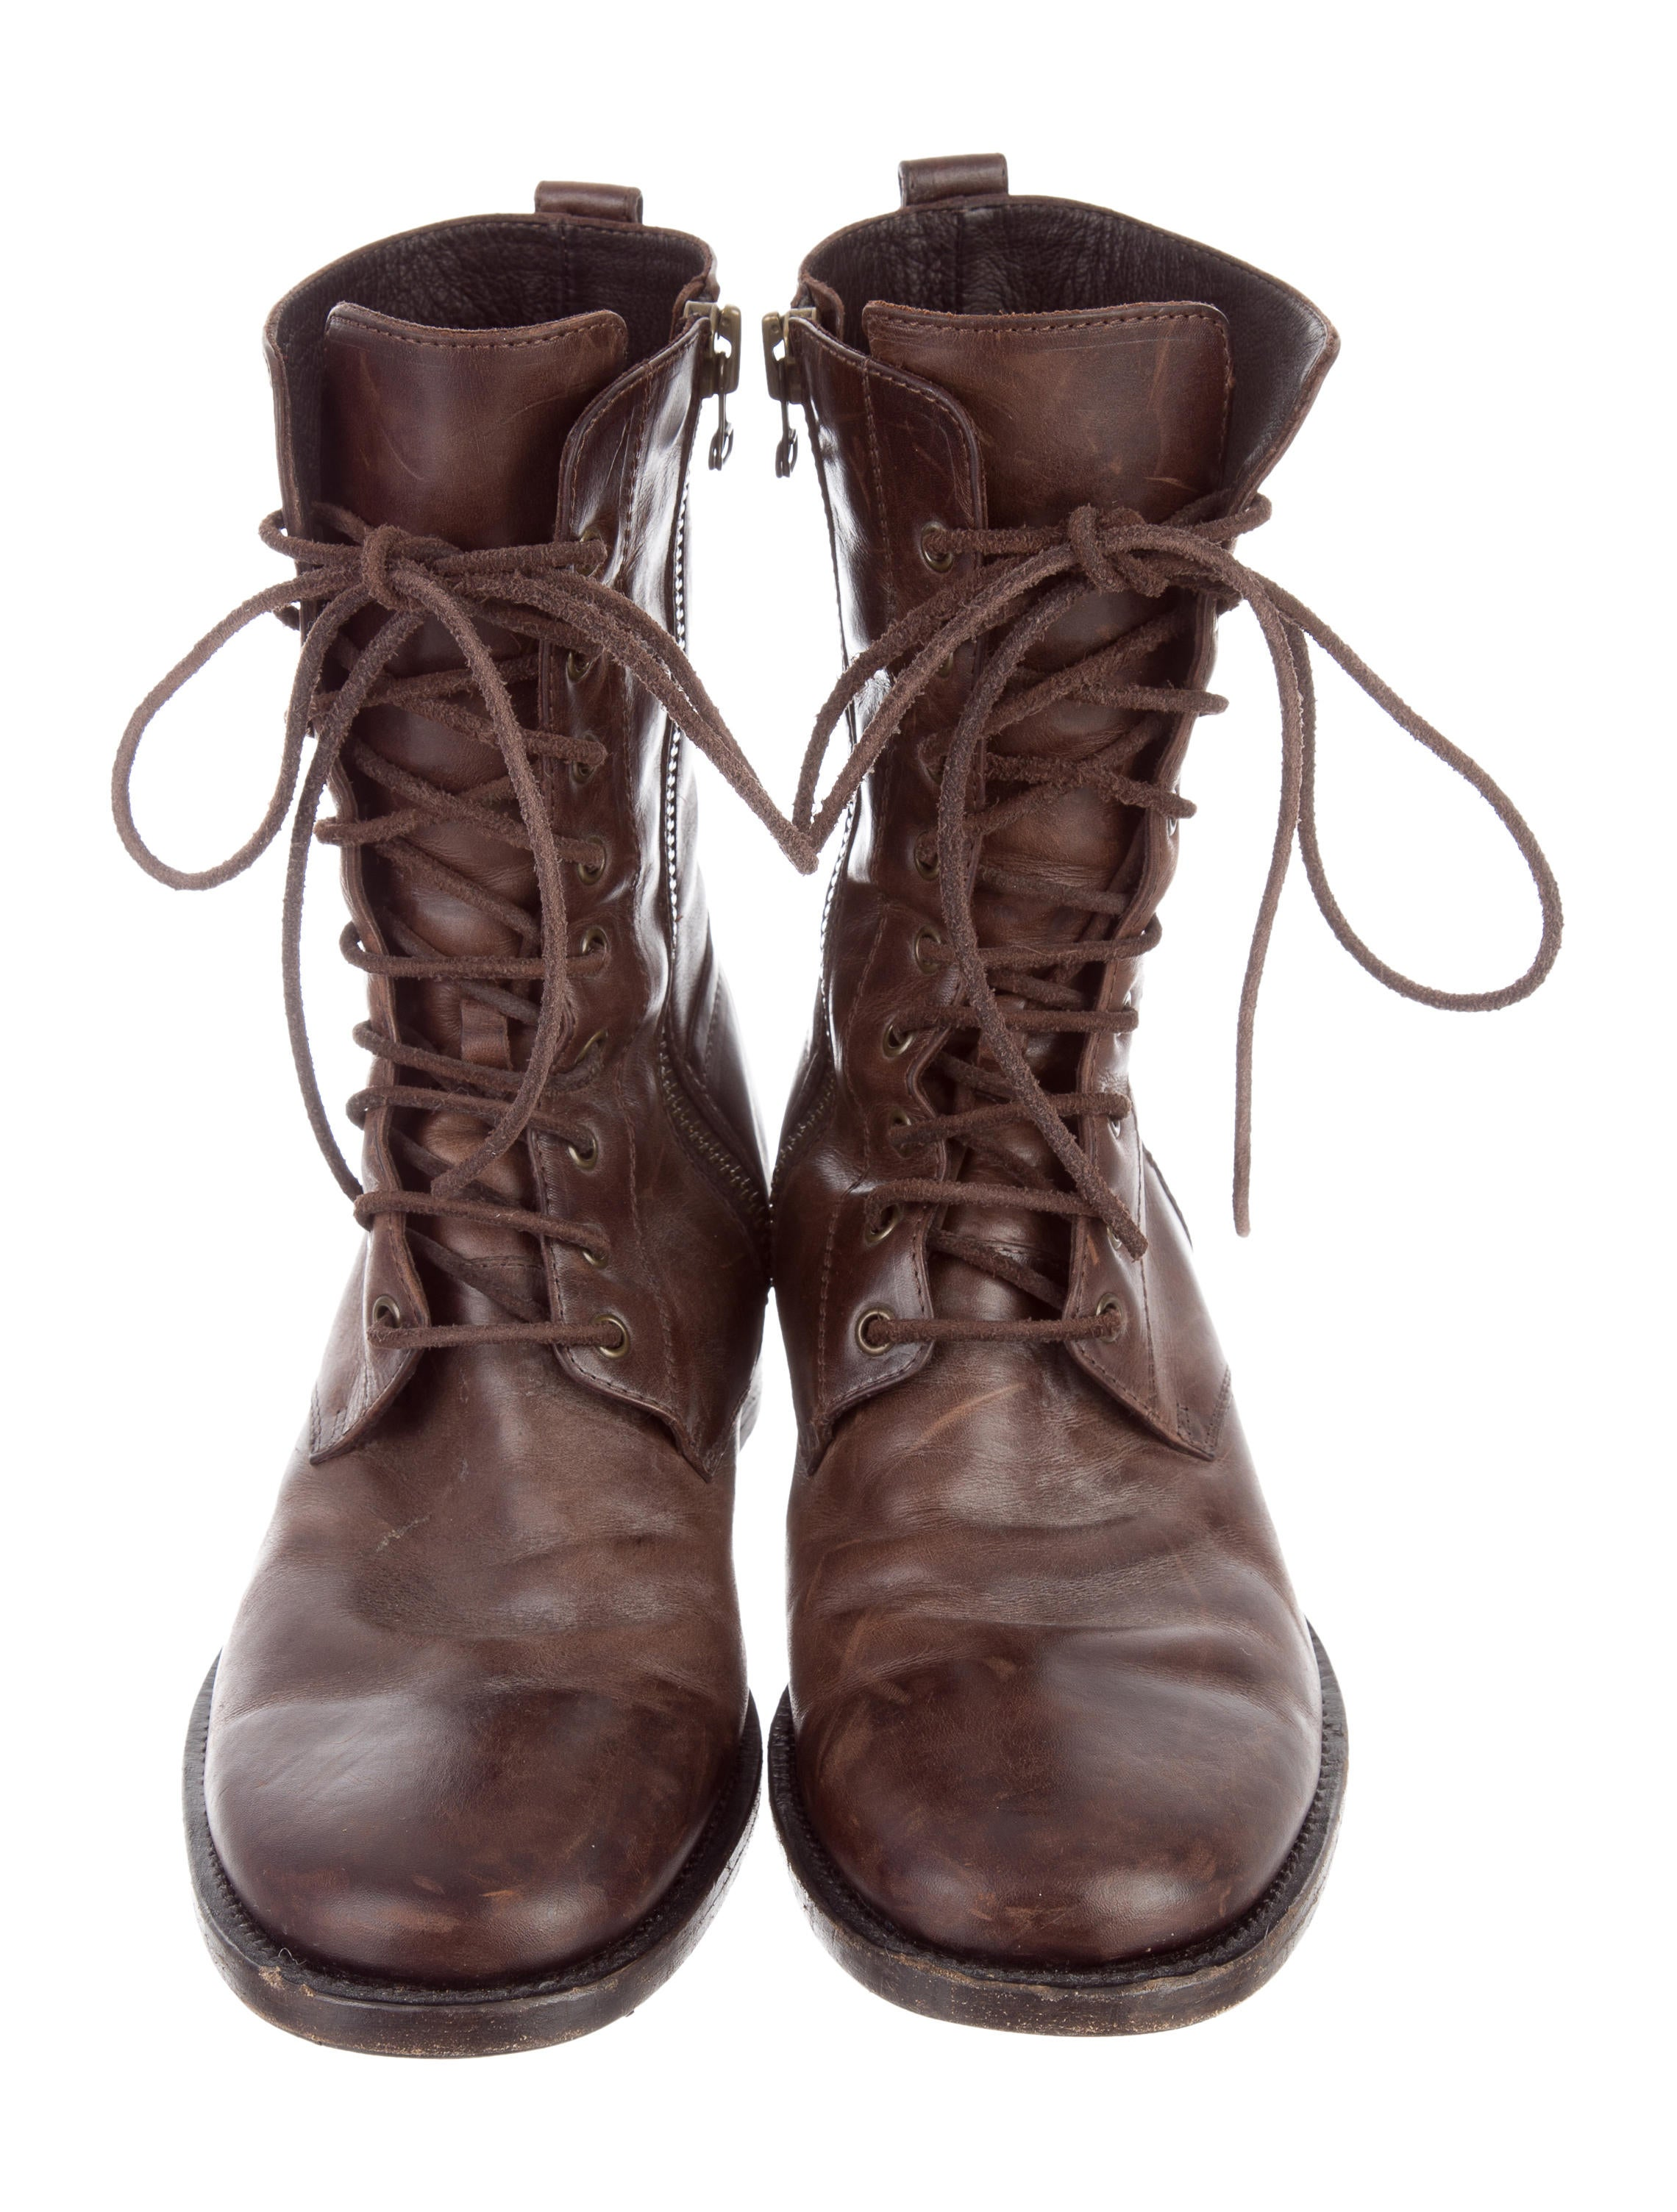 Buttero Leather Combat Boots - Shoes - W6B20029 | The RealReal